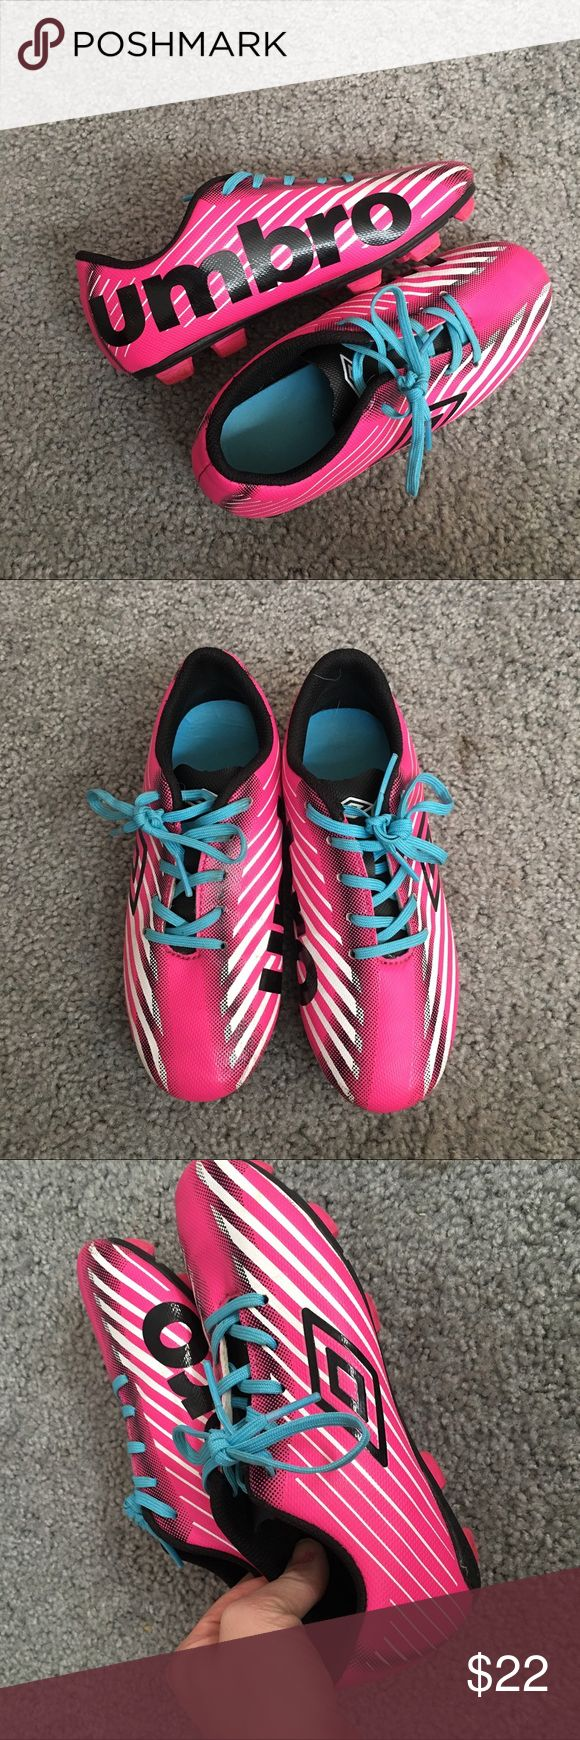 Umbro Arturo Girls Kids Soccer Shoes Umbro Arturo Girls Kids Soccer Shoes with cleats black and pink. Only worn once . No signs of wear excellent condition . Any questions please ask . Umbro Shoes Sneakers